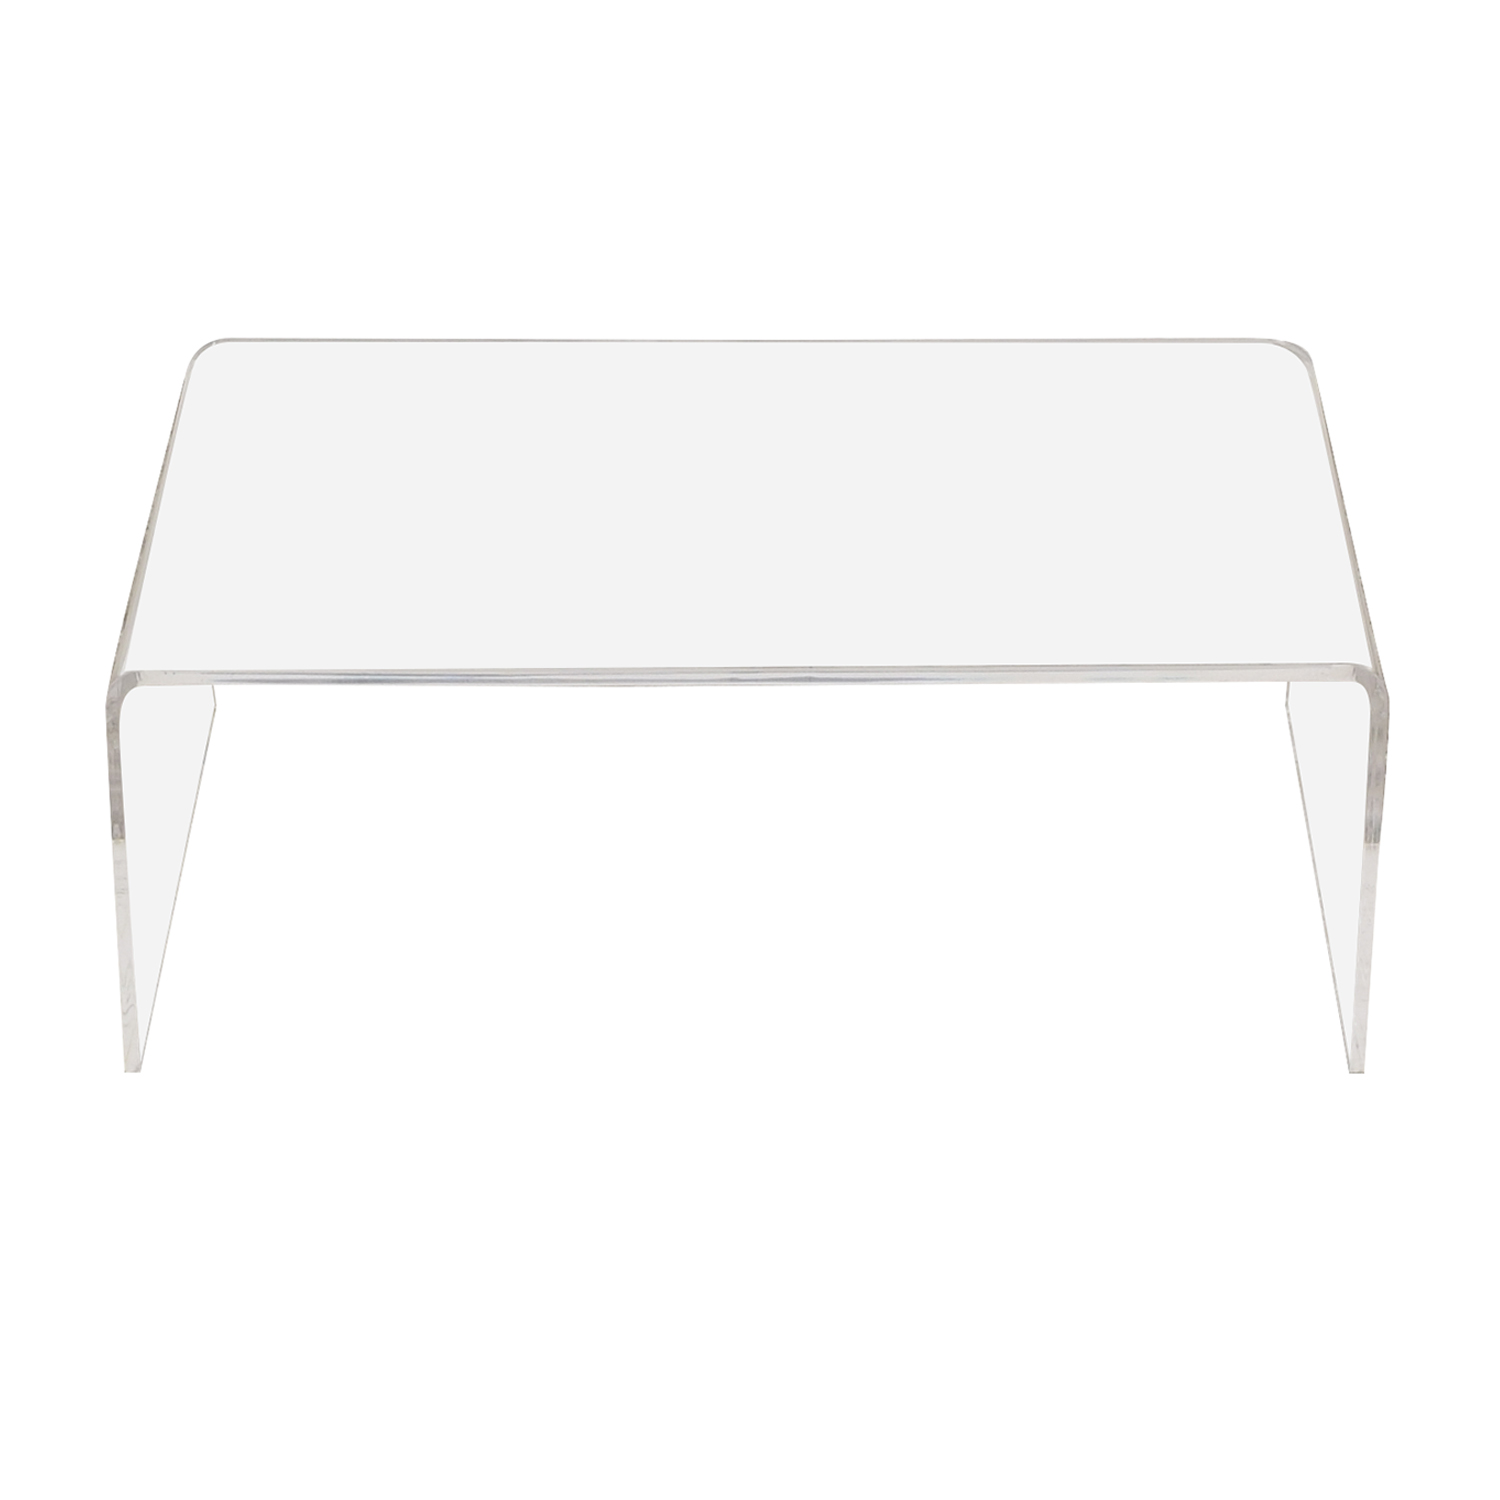 CB2 CB2 Peekaboo Acrylic Coffee Table ct